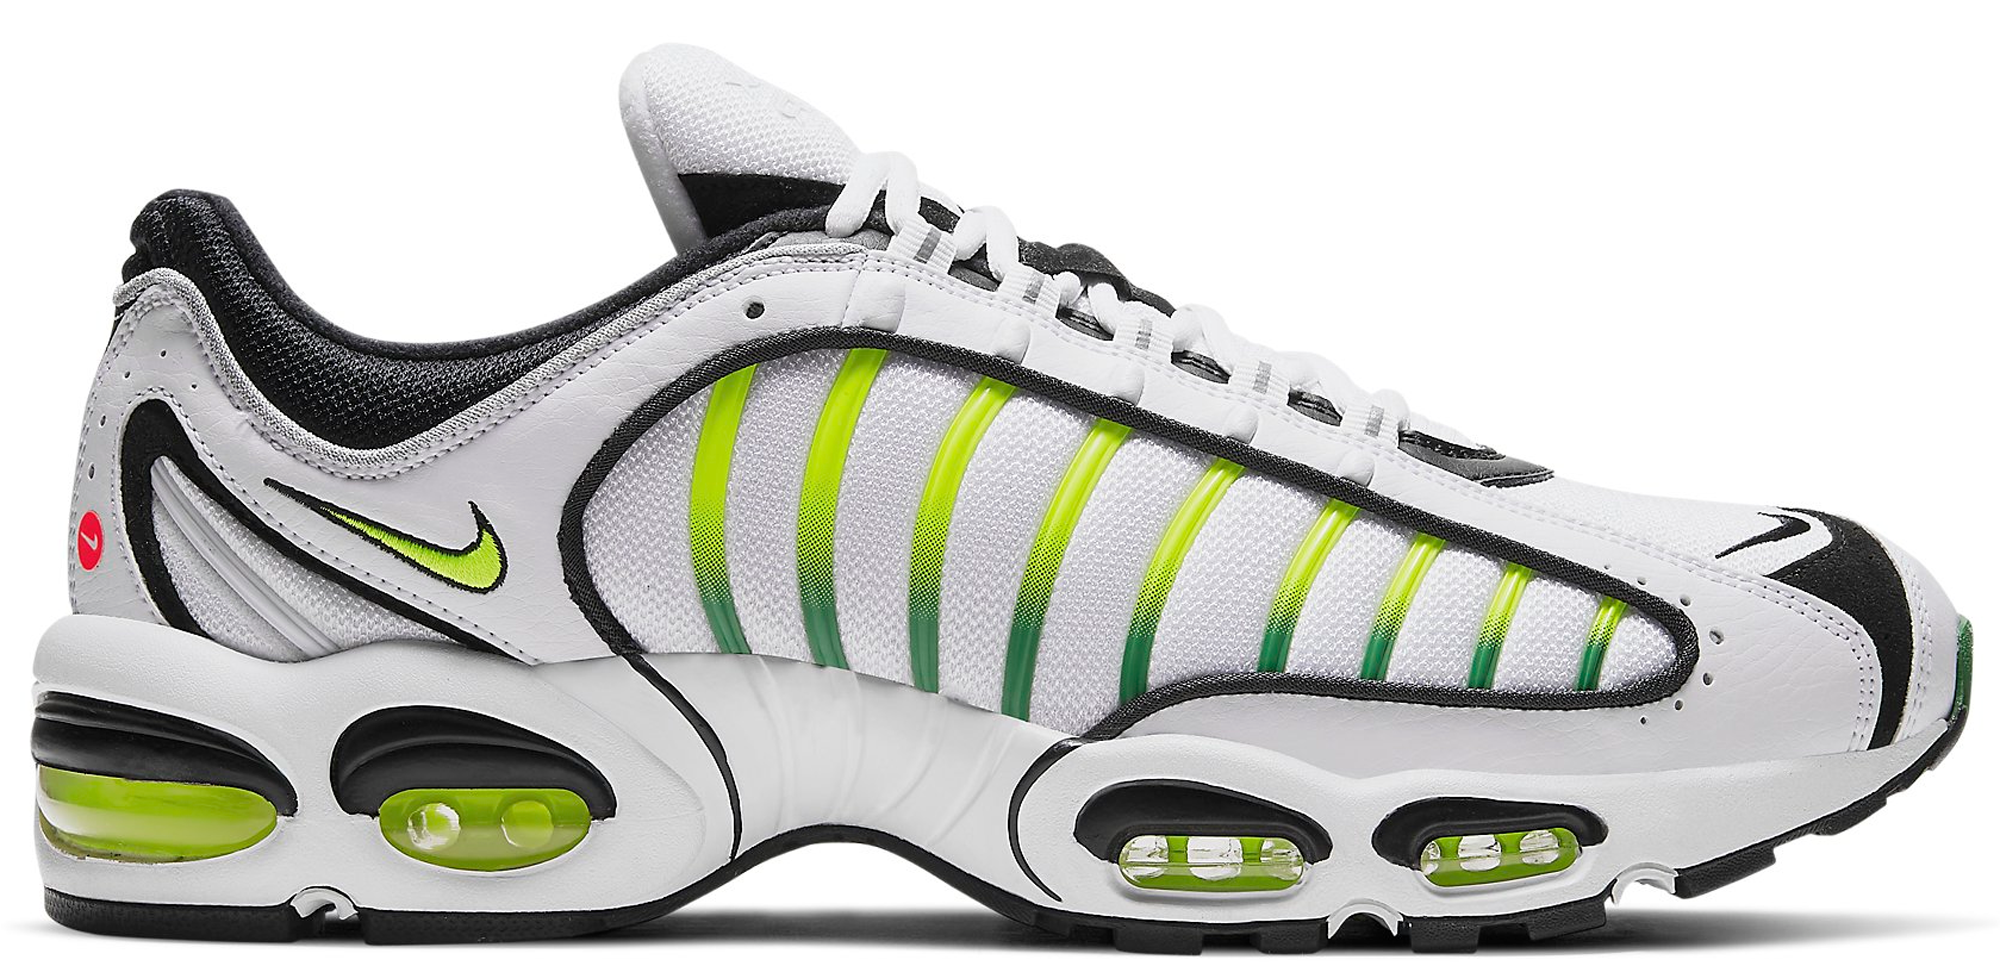 Air Max Tailwind 4 White Volt Black